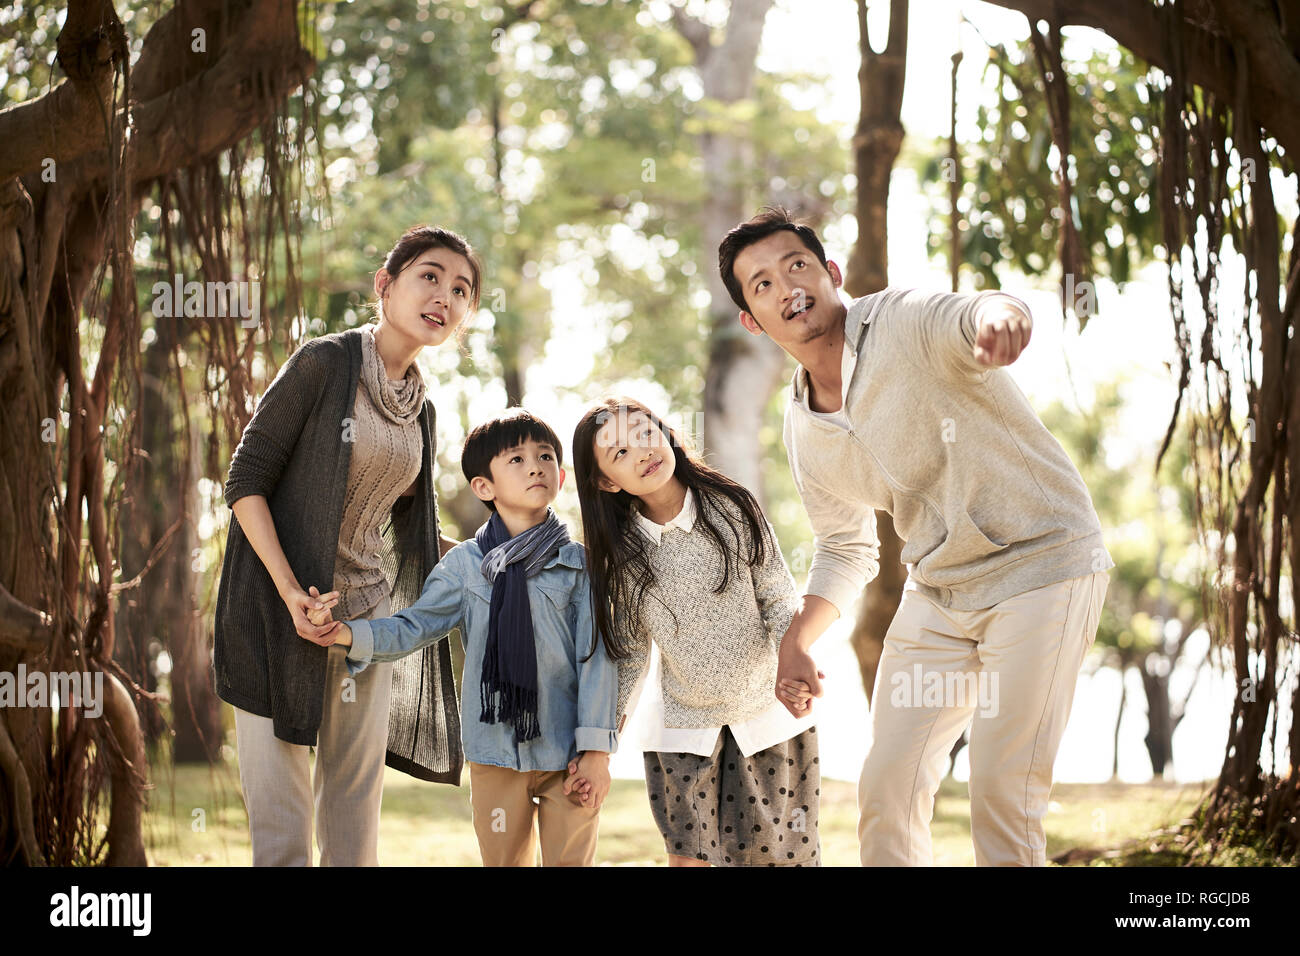 asian family with two children having fun exploring woods in a park. - Stock Image